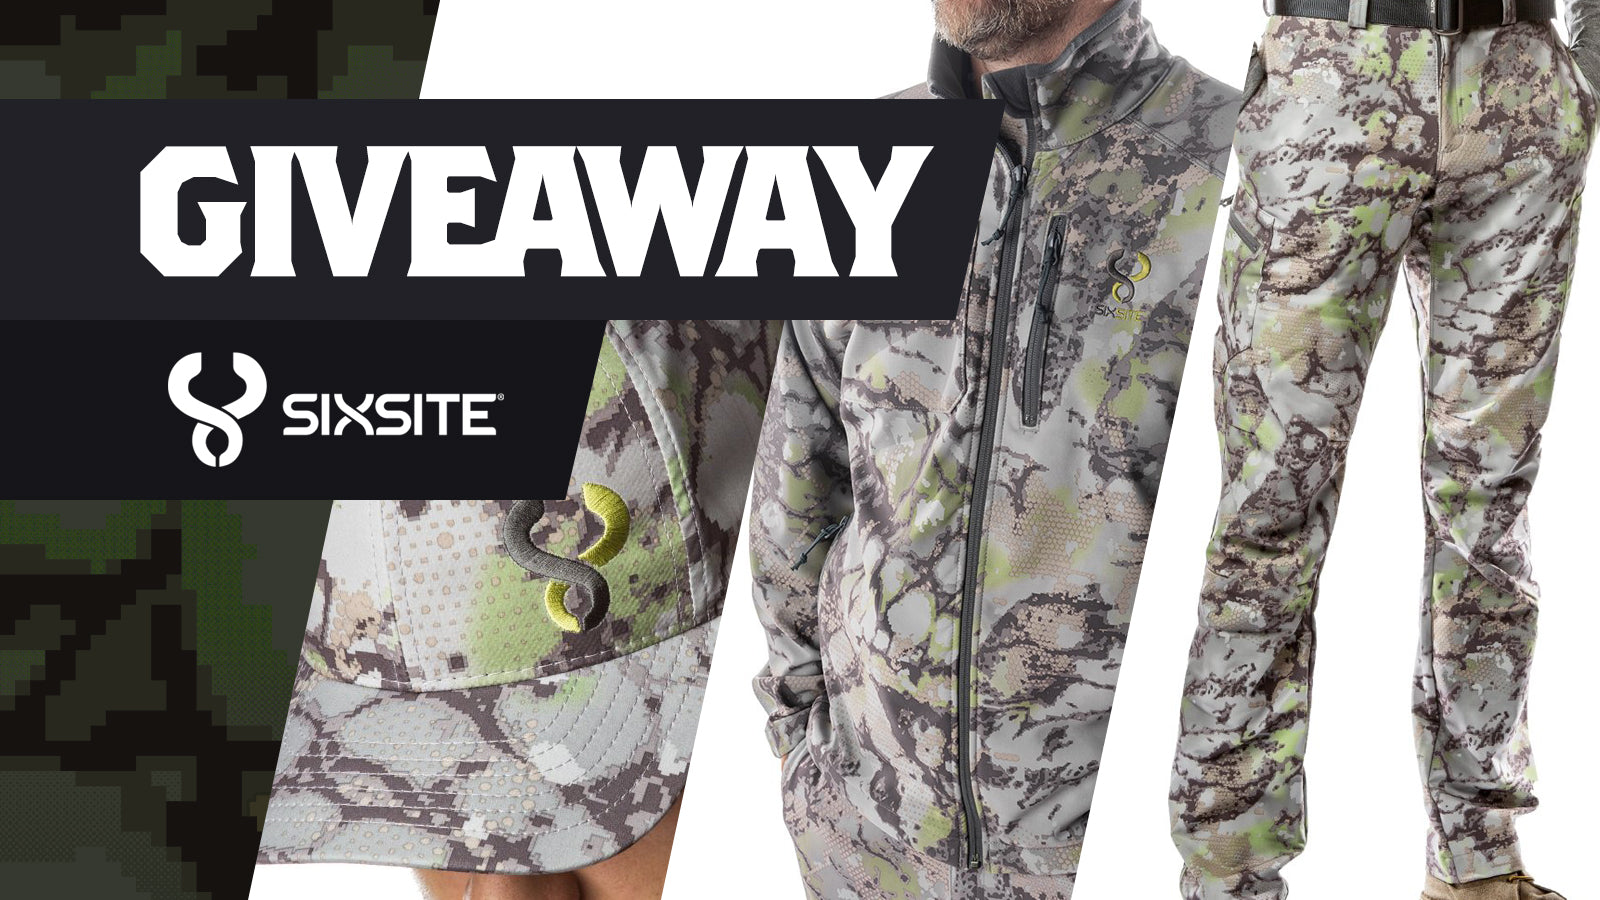 Giveaway: SIXSITE Gear Package With Jacket, Pants & Hat | $435 VALUE